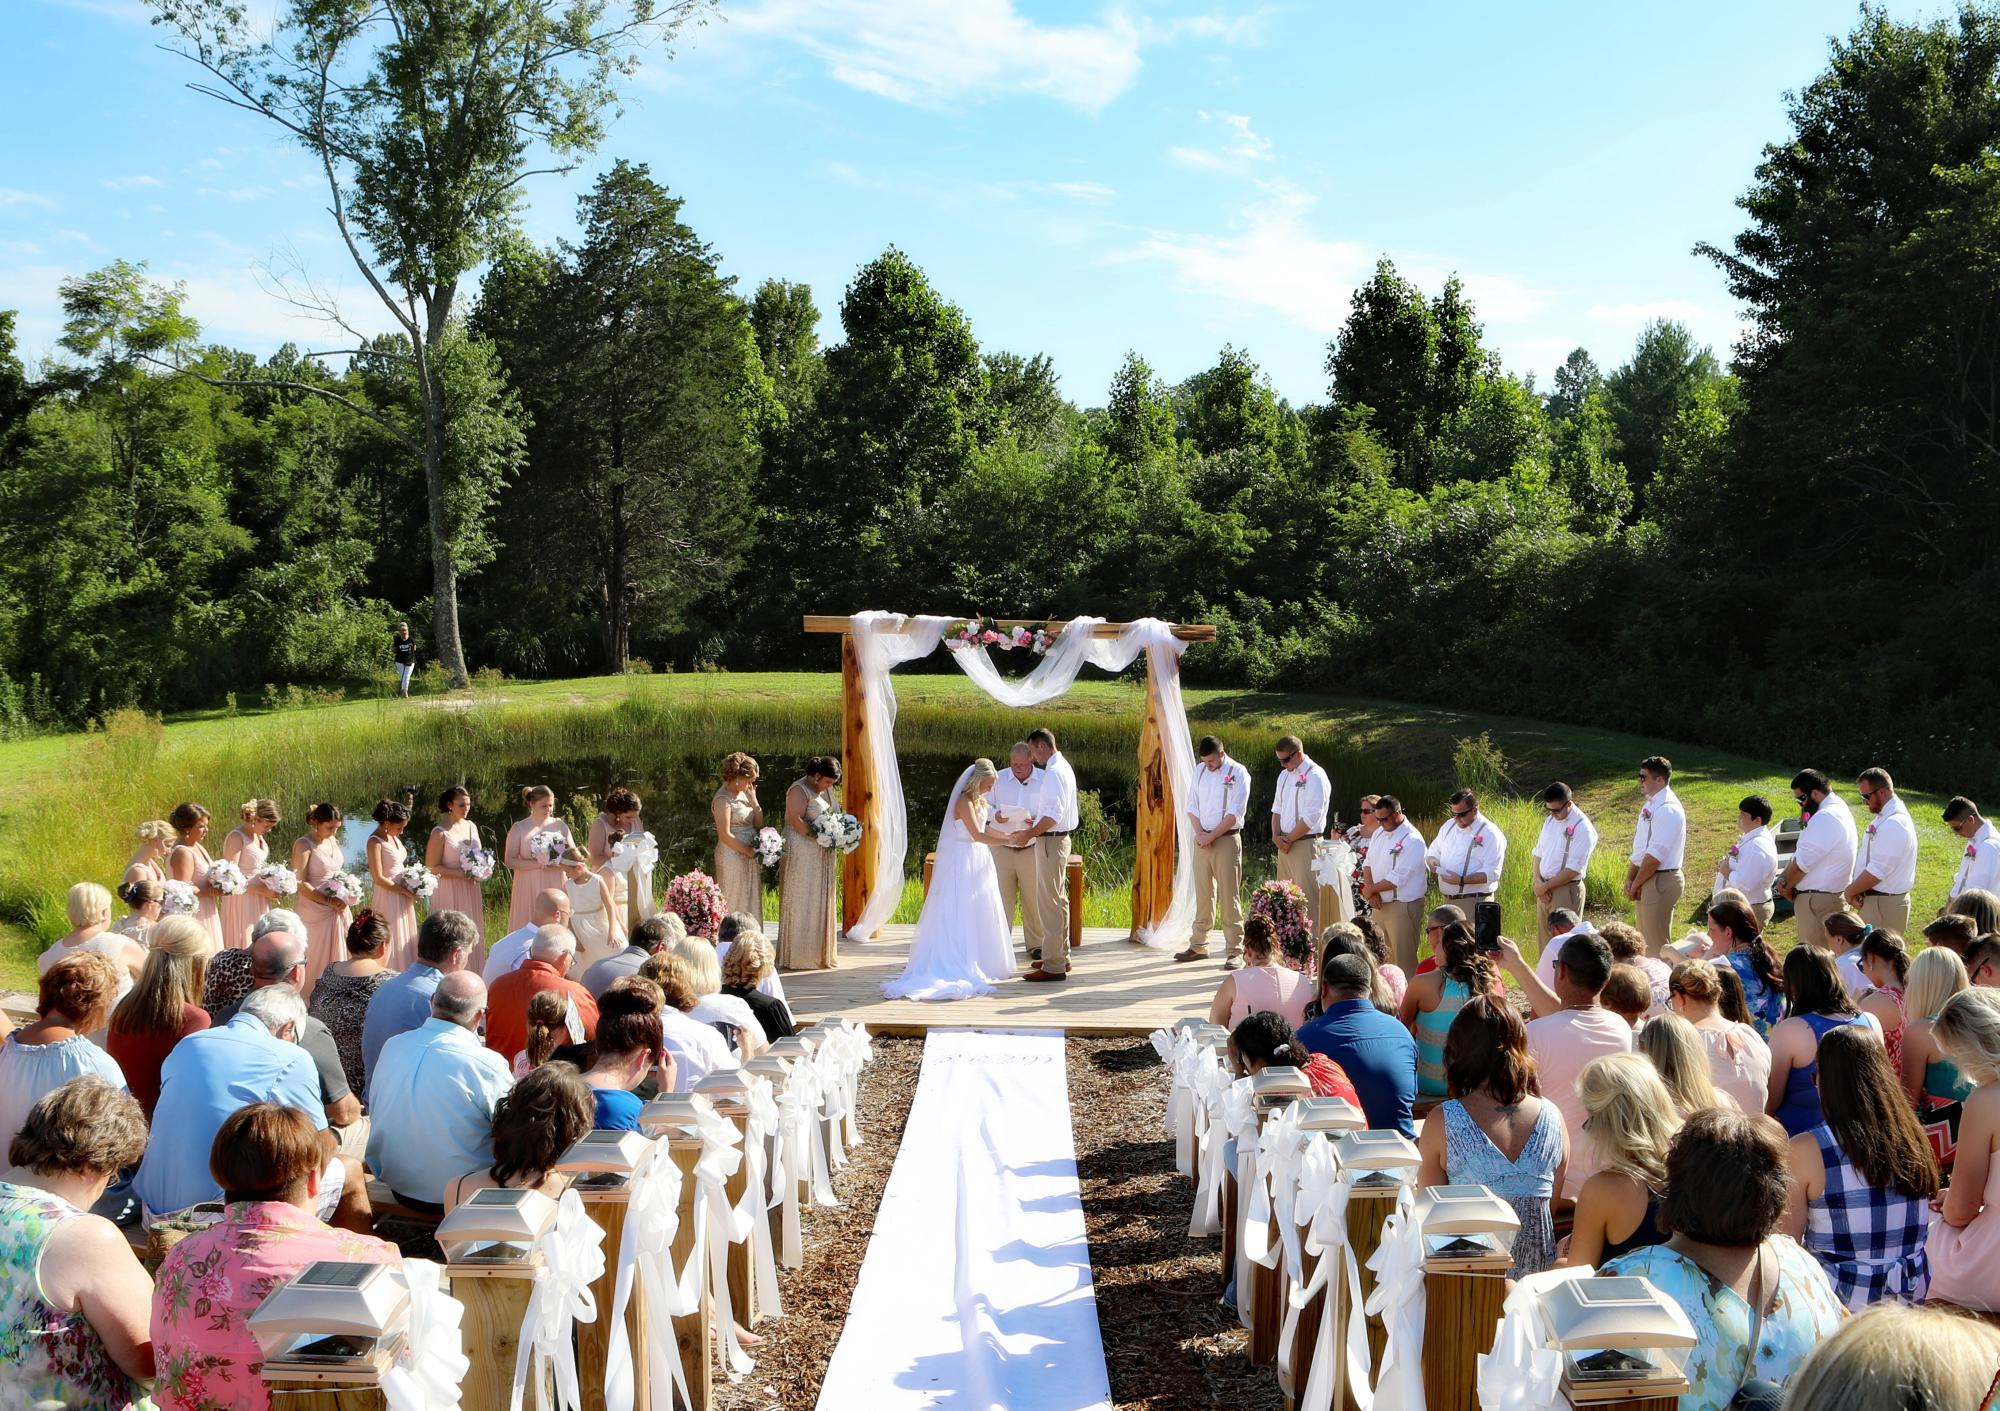 31__wedding_at_the_pond_praying.jpg